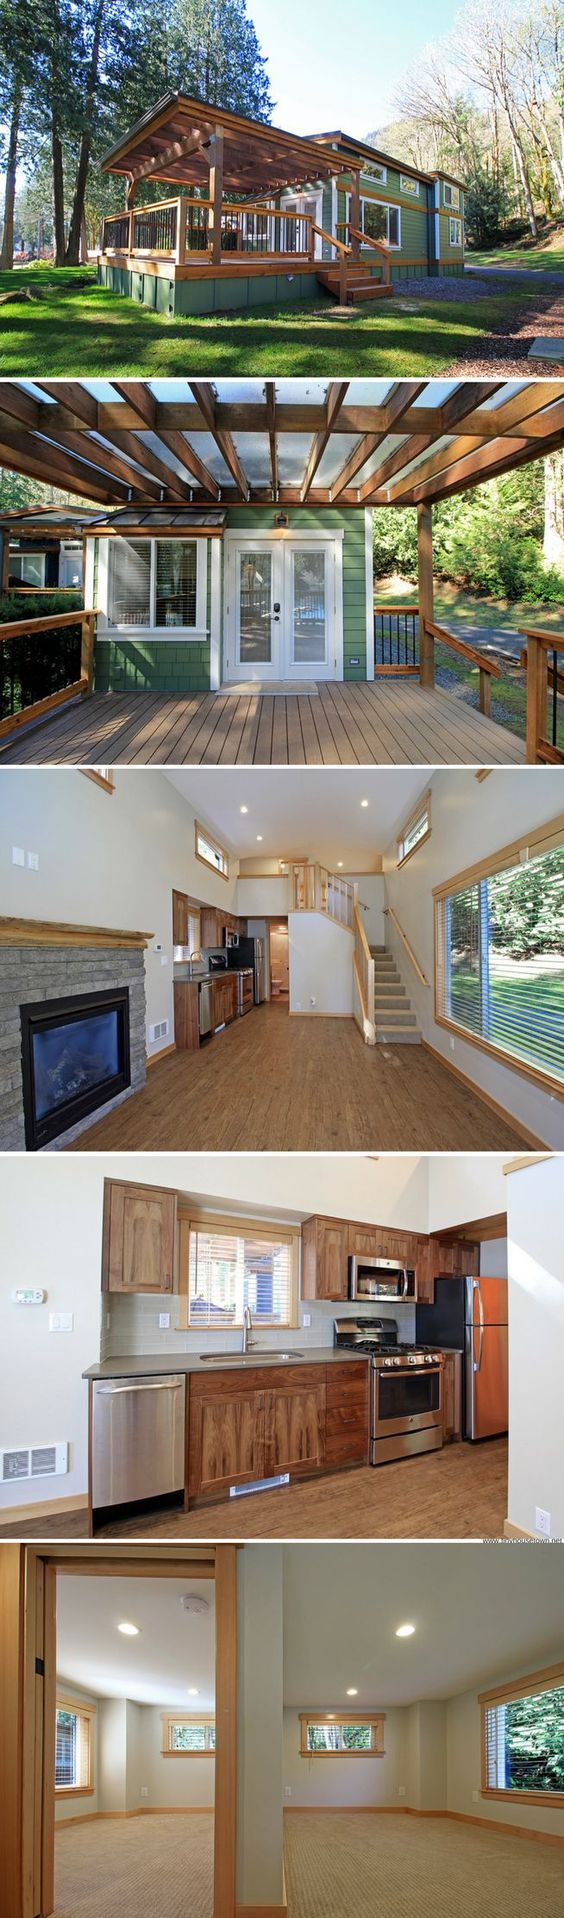 The Whidbey A Luxury 400 Sq Ft Park Model Home Tiny